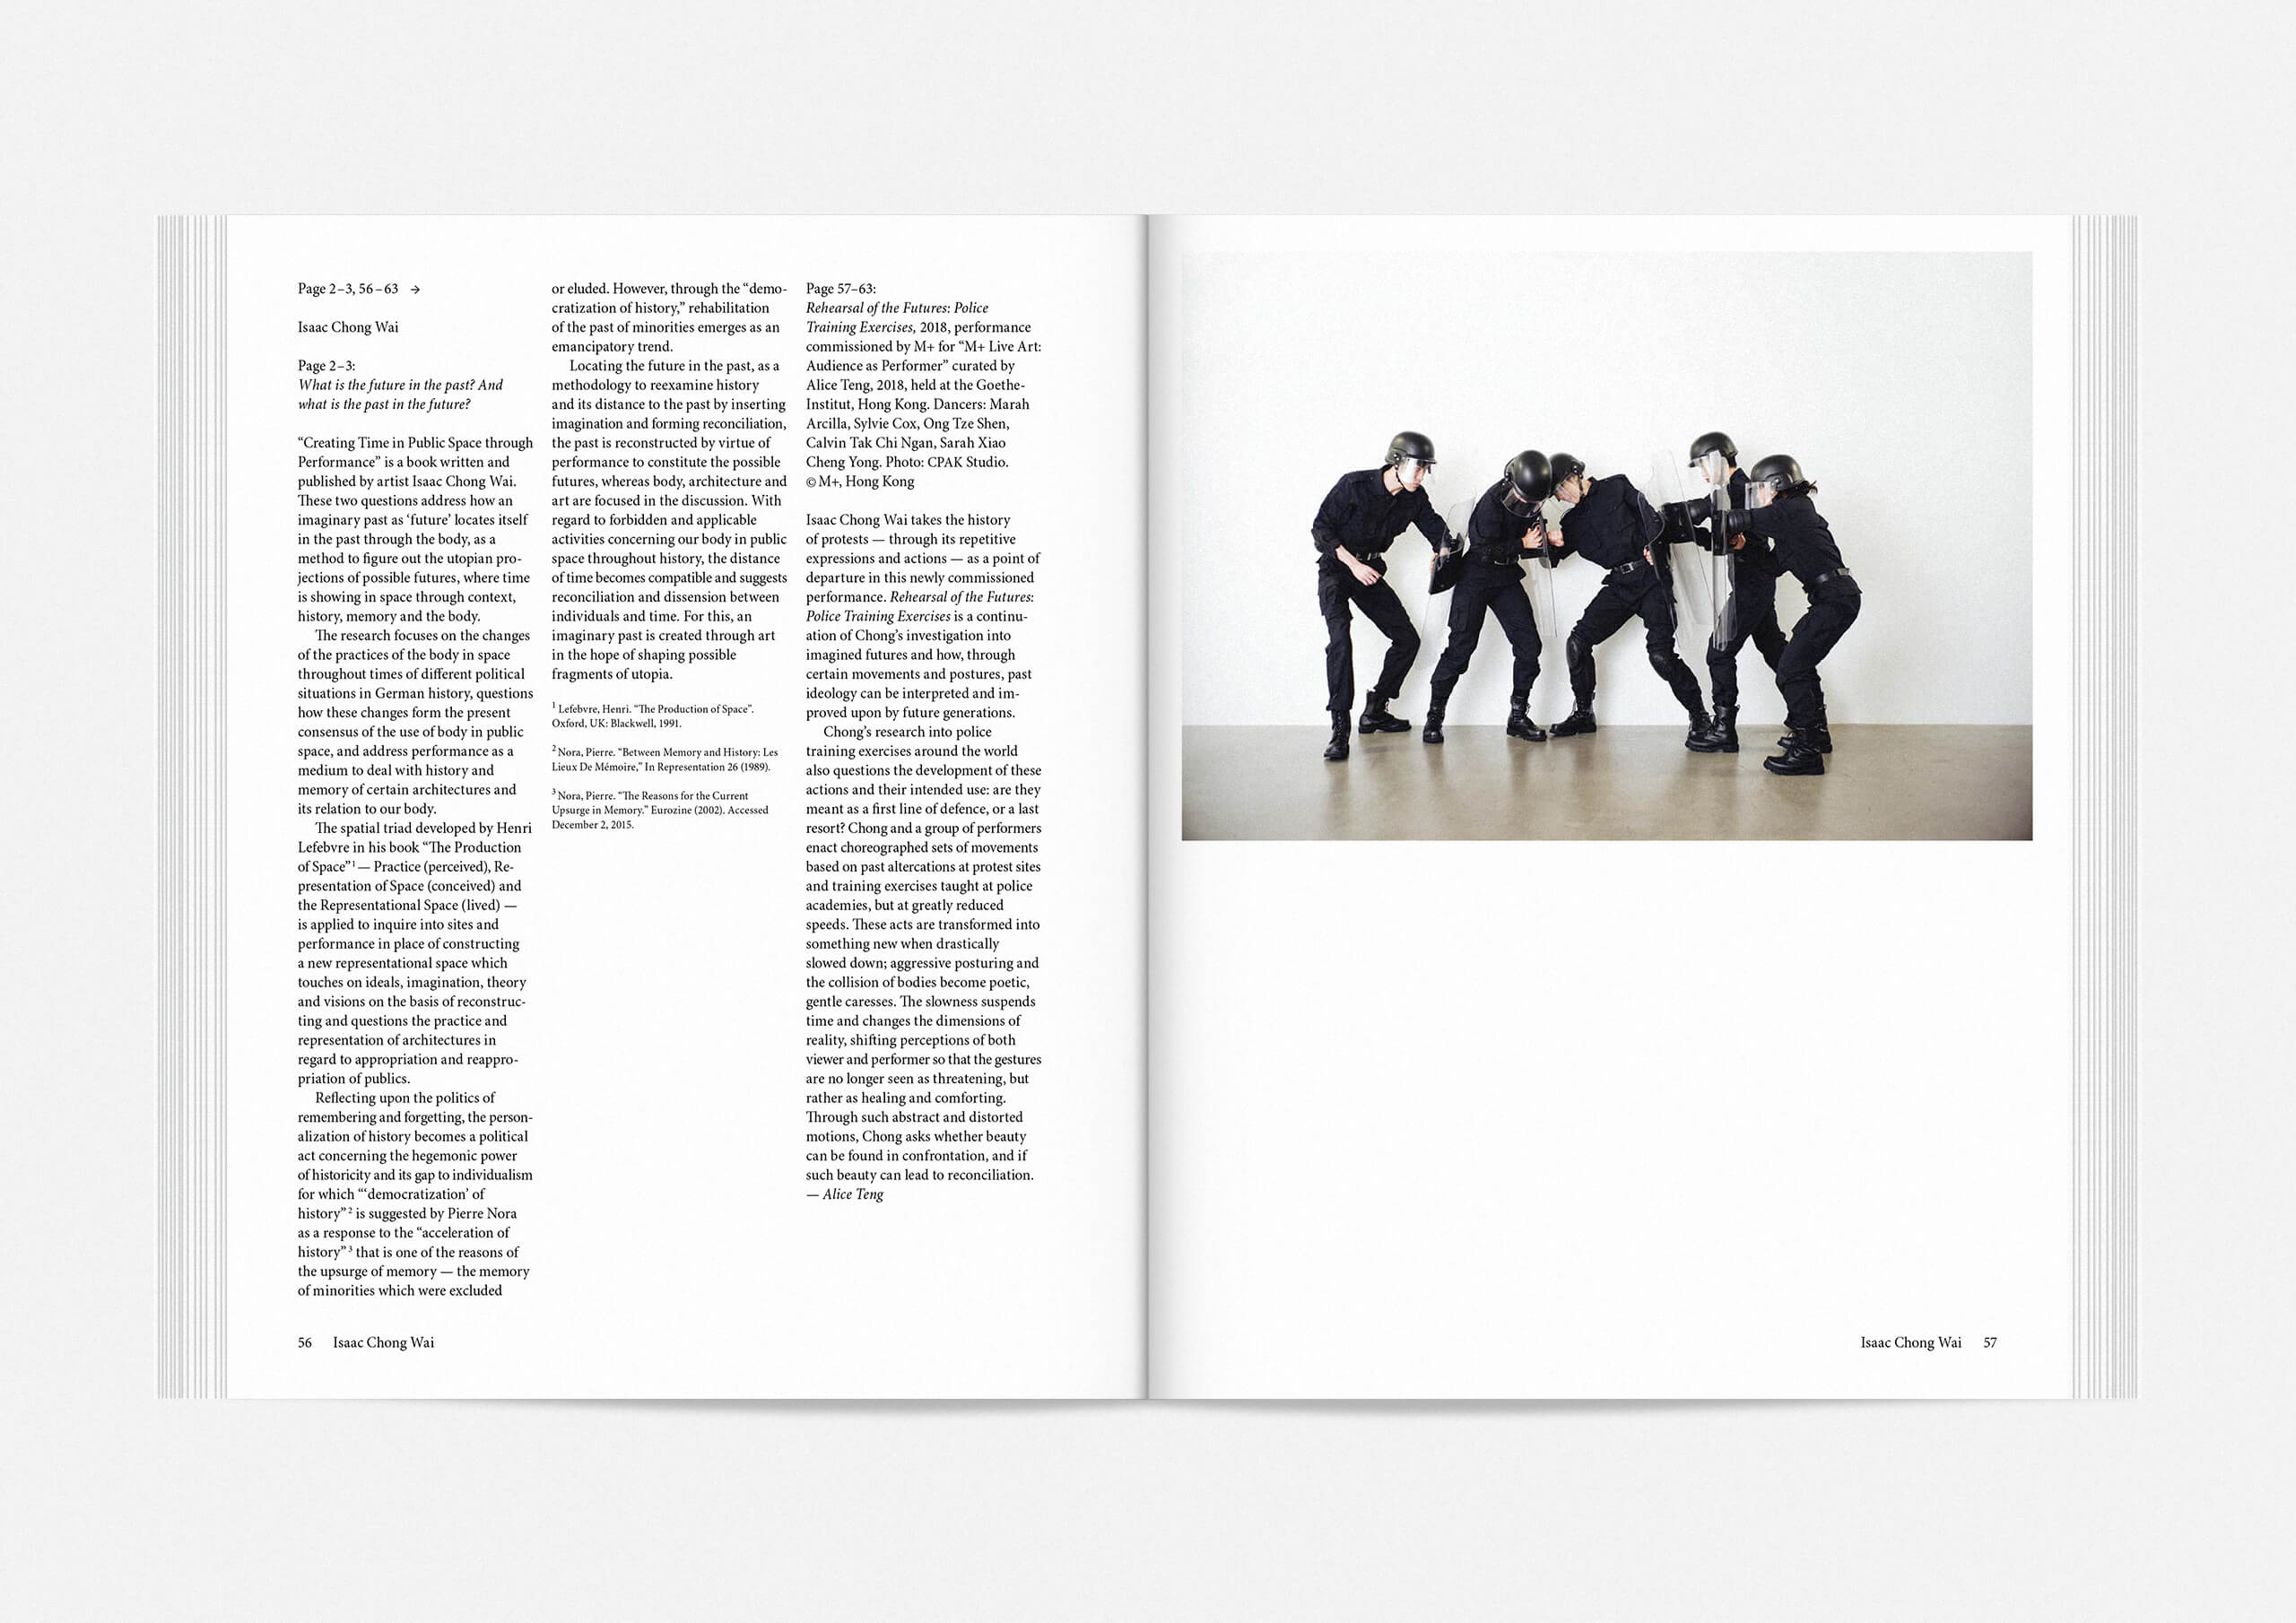 https://neuegestaltung.de/media/pages/clients/protocollum-issue-no-05/bf1dea58ab-1597415141/protocollum-5-page-5657-ng.jpg